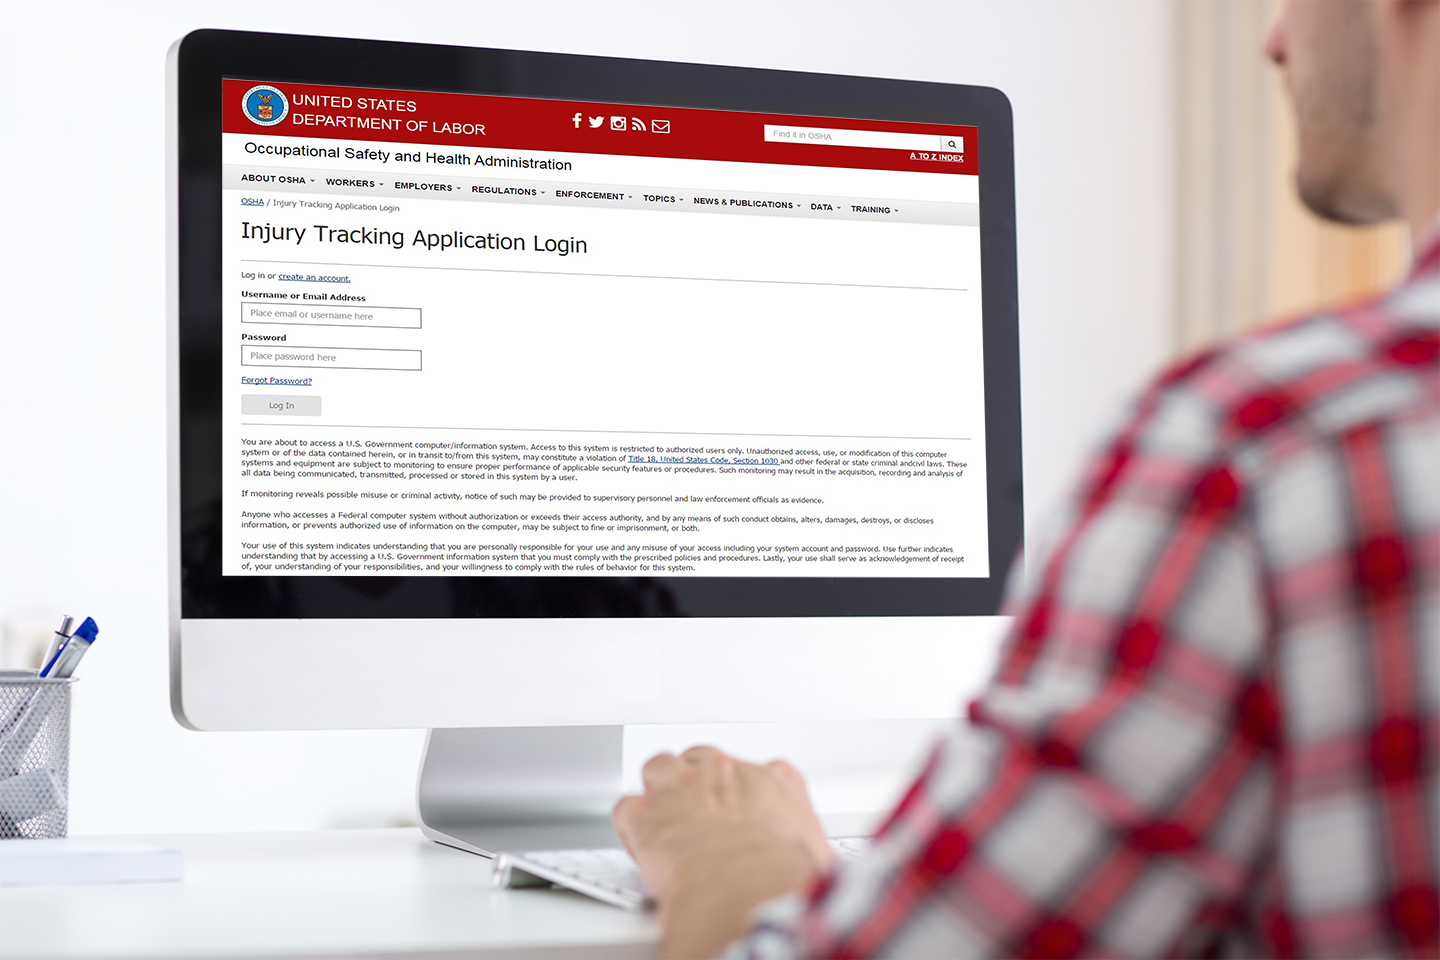 Man looking at the OSHA website login page on a computer.